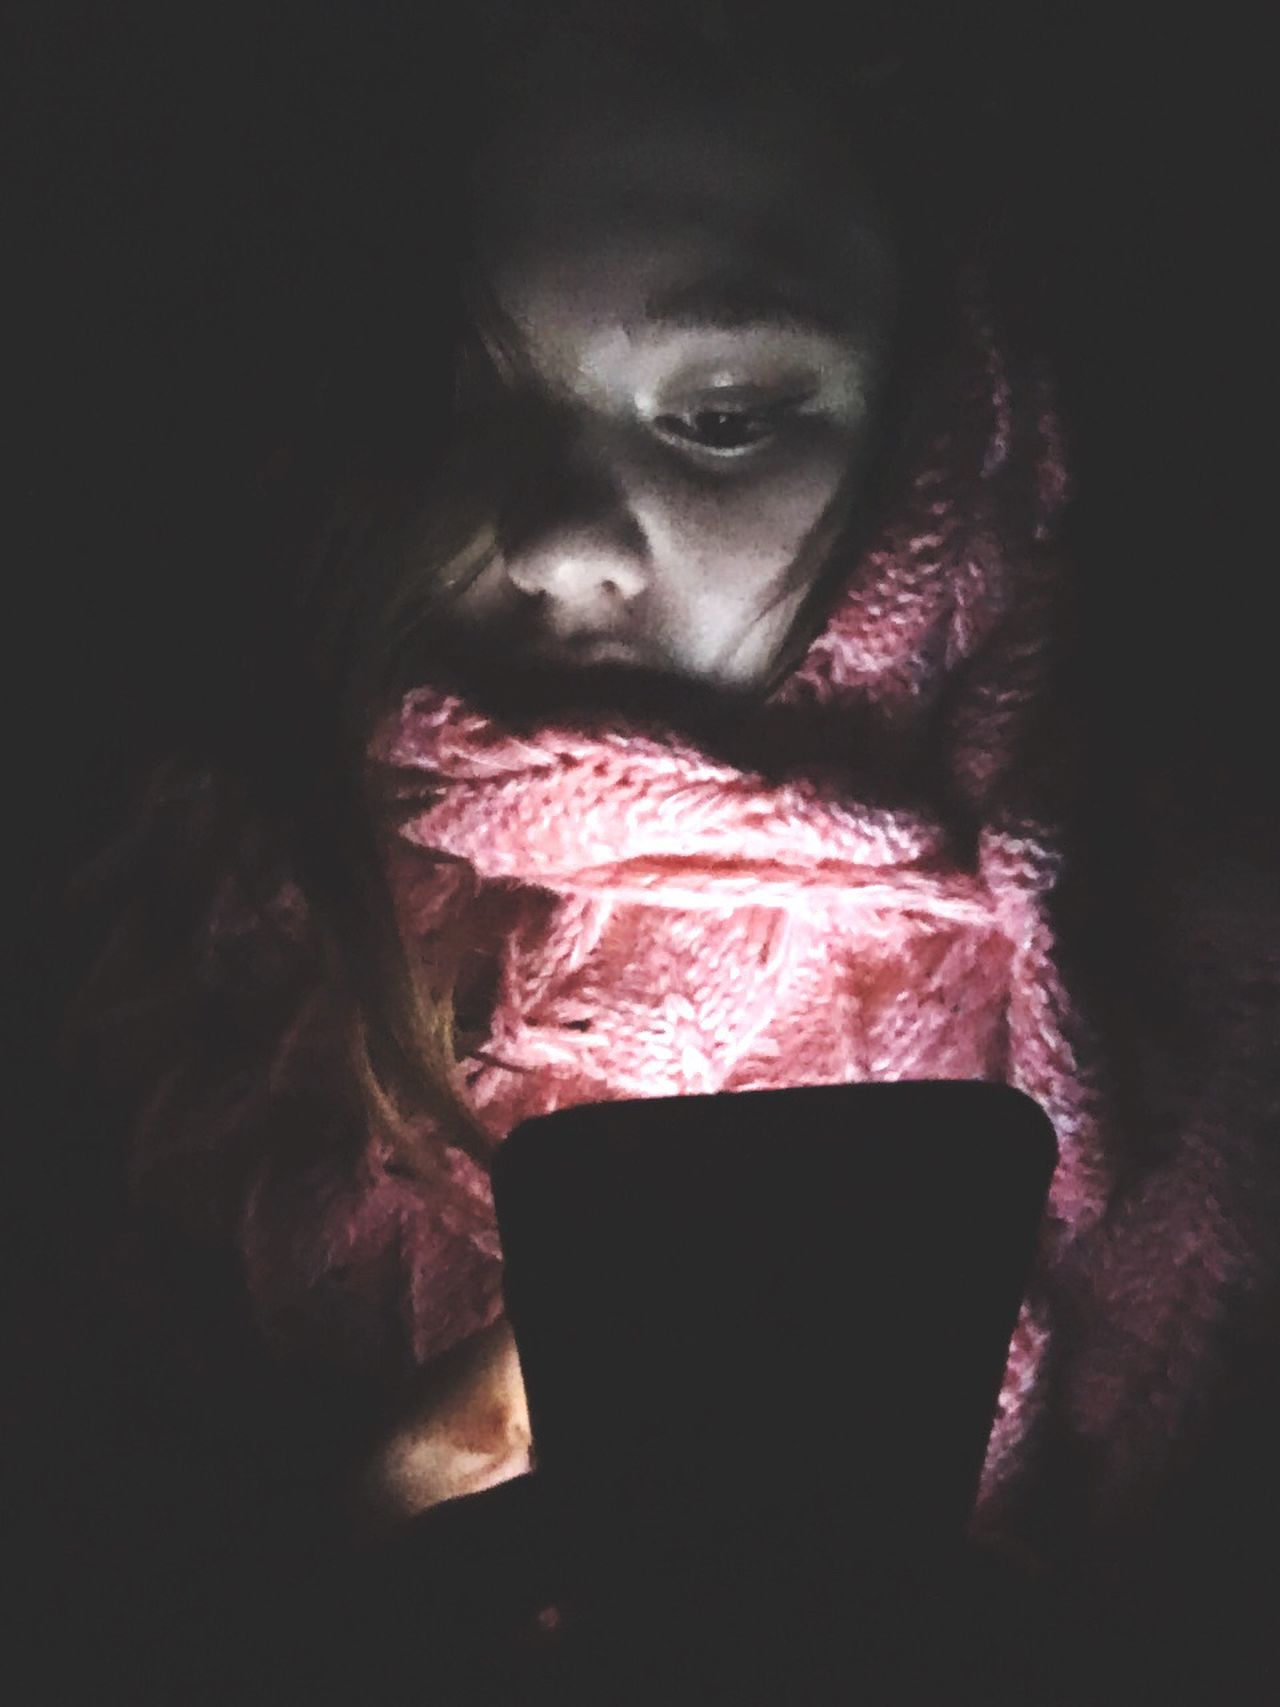 Dark Lifestyles Wireless Technology Technology One Person Real People Indoors  Portrait Close-up Night Young Women Young Adult People Adult Light Blanket Comfortable Shadow And Light Lights Pink Girl One Woman One Young Woman Only Young Girl Darkness